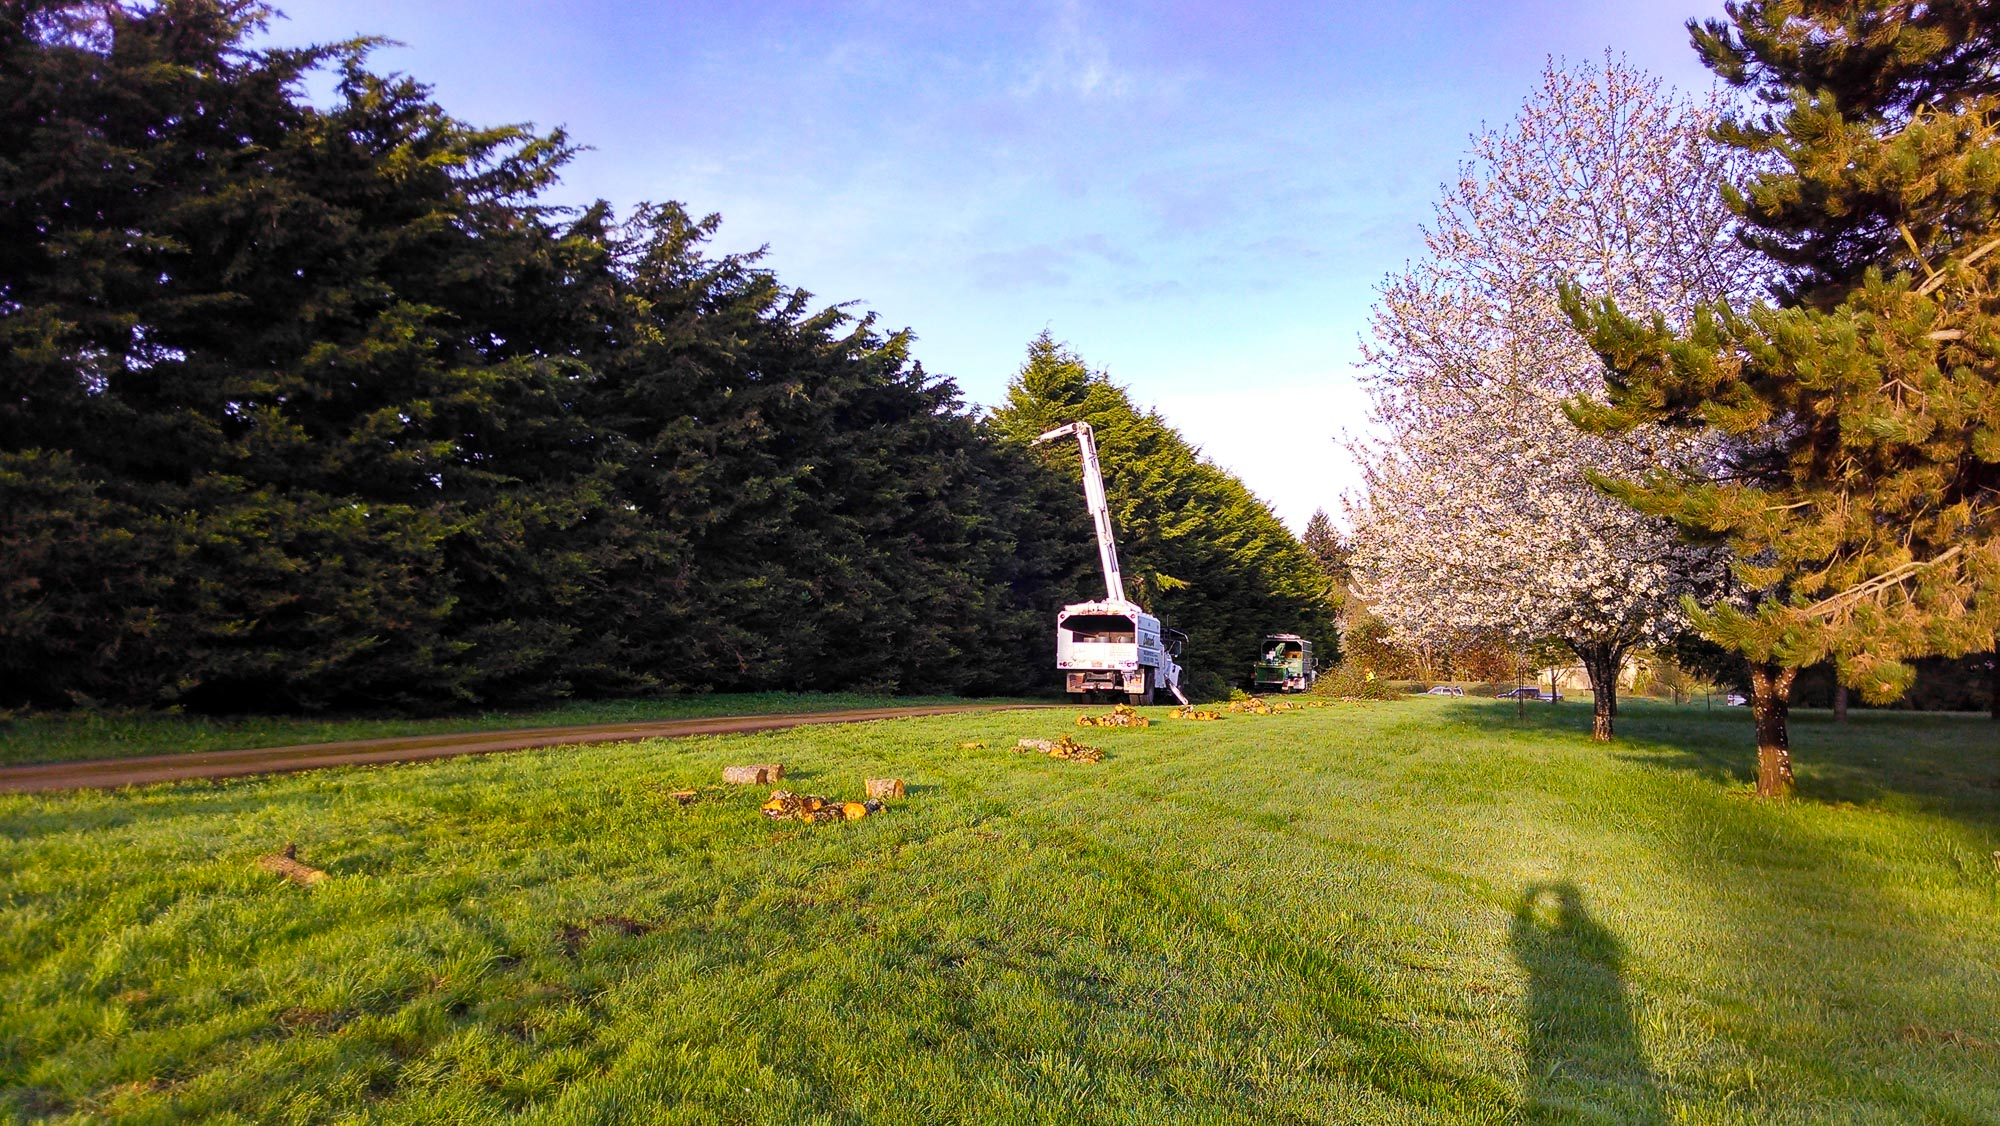 tree-service-removal-pruning-salem-oregon-185